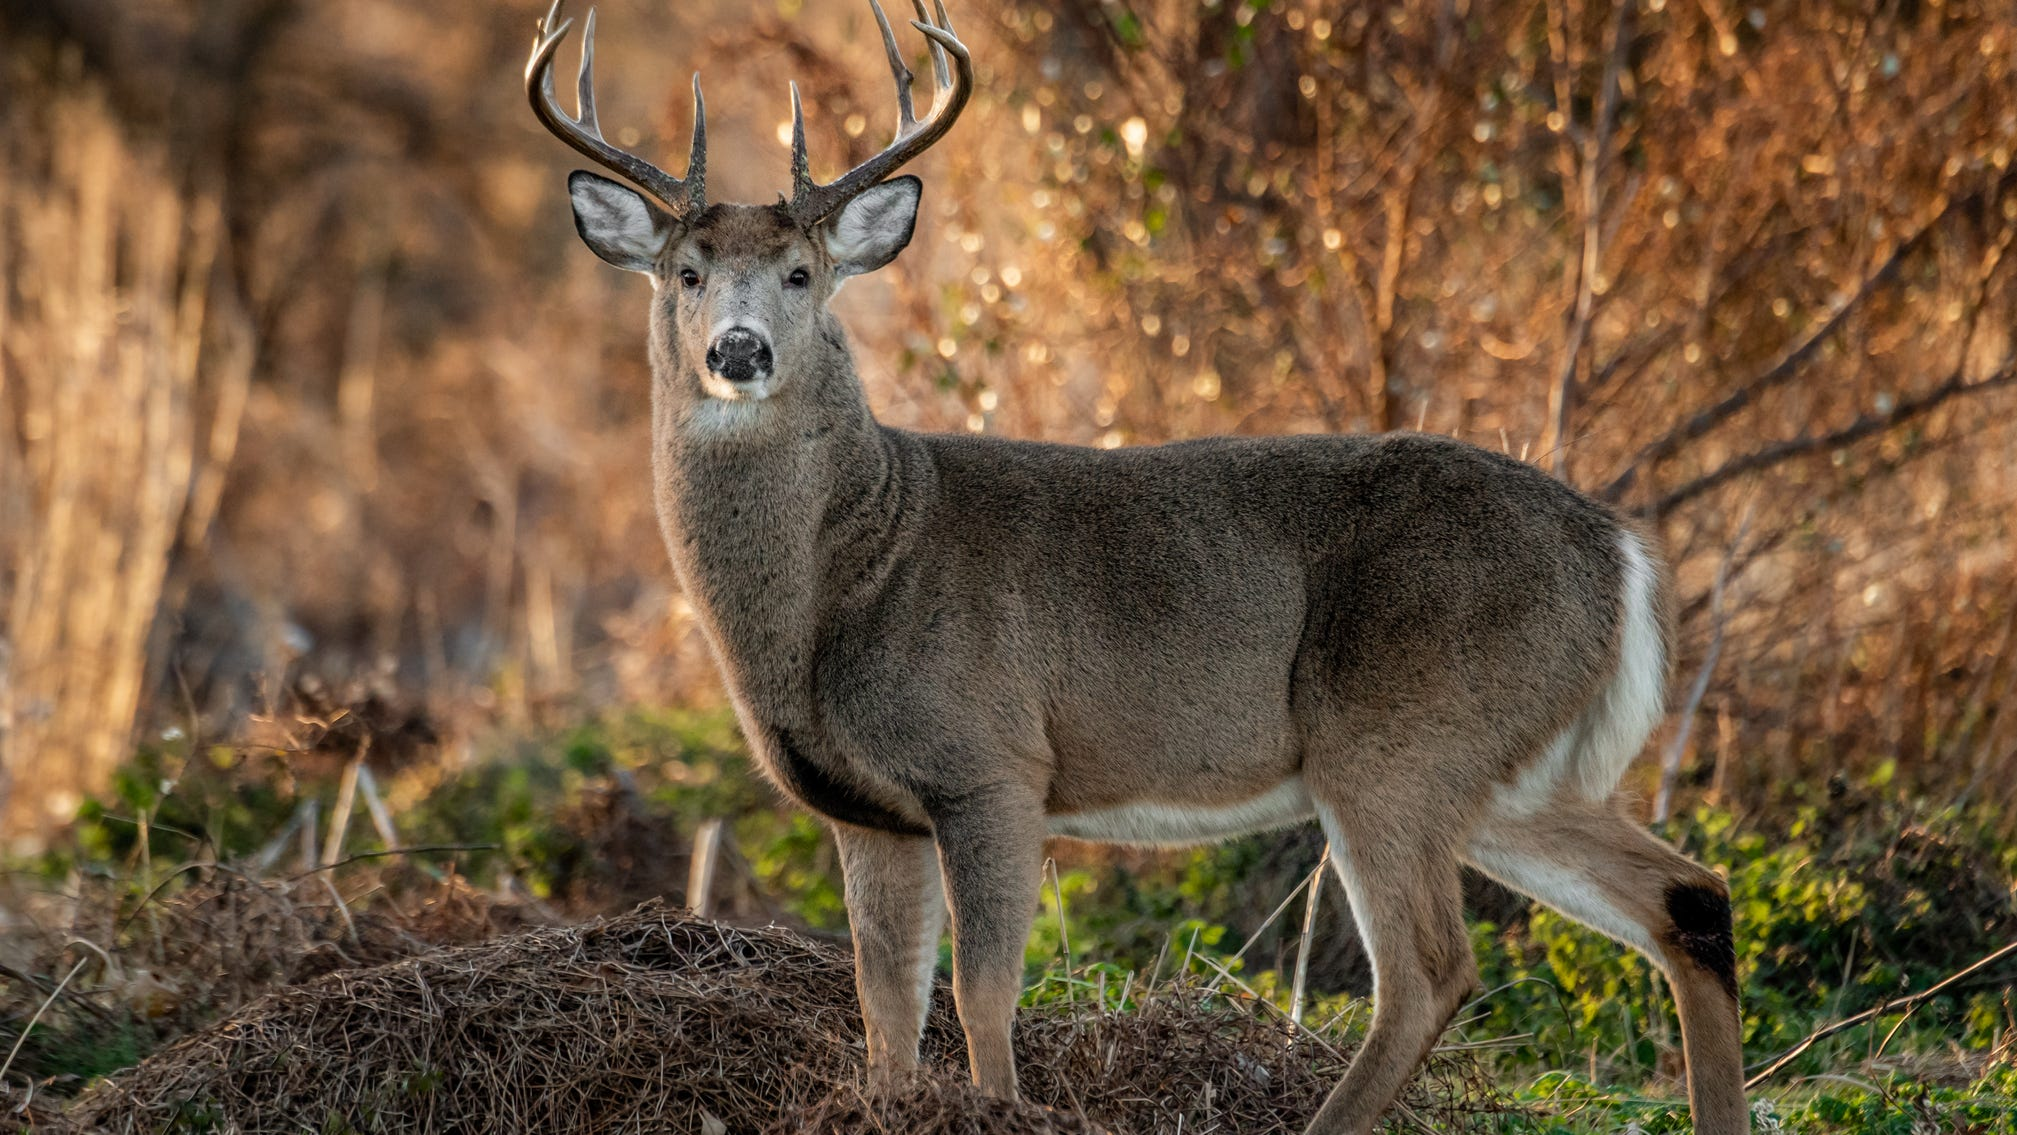 Philly imposes curfews in city parks for deer harvest